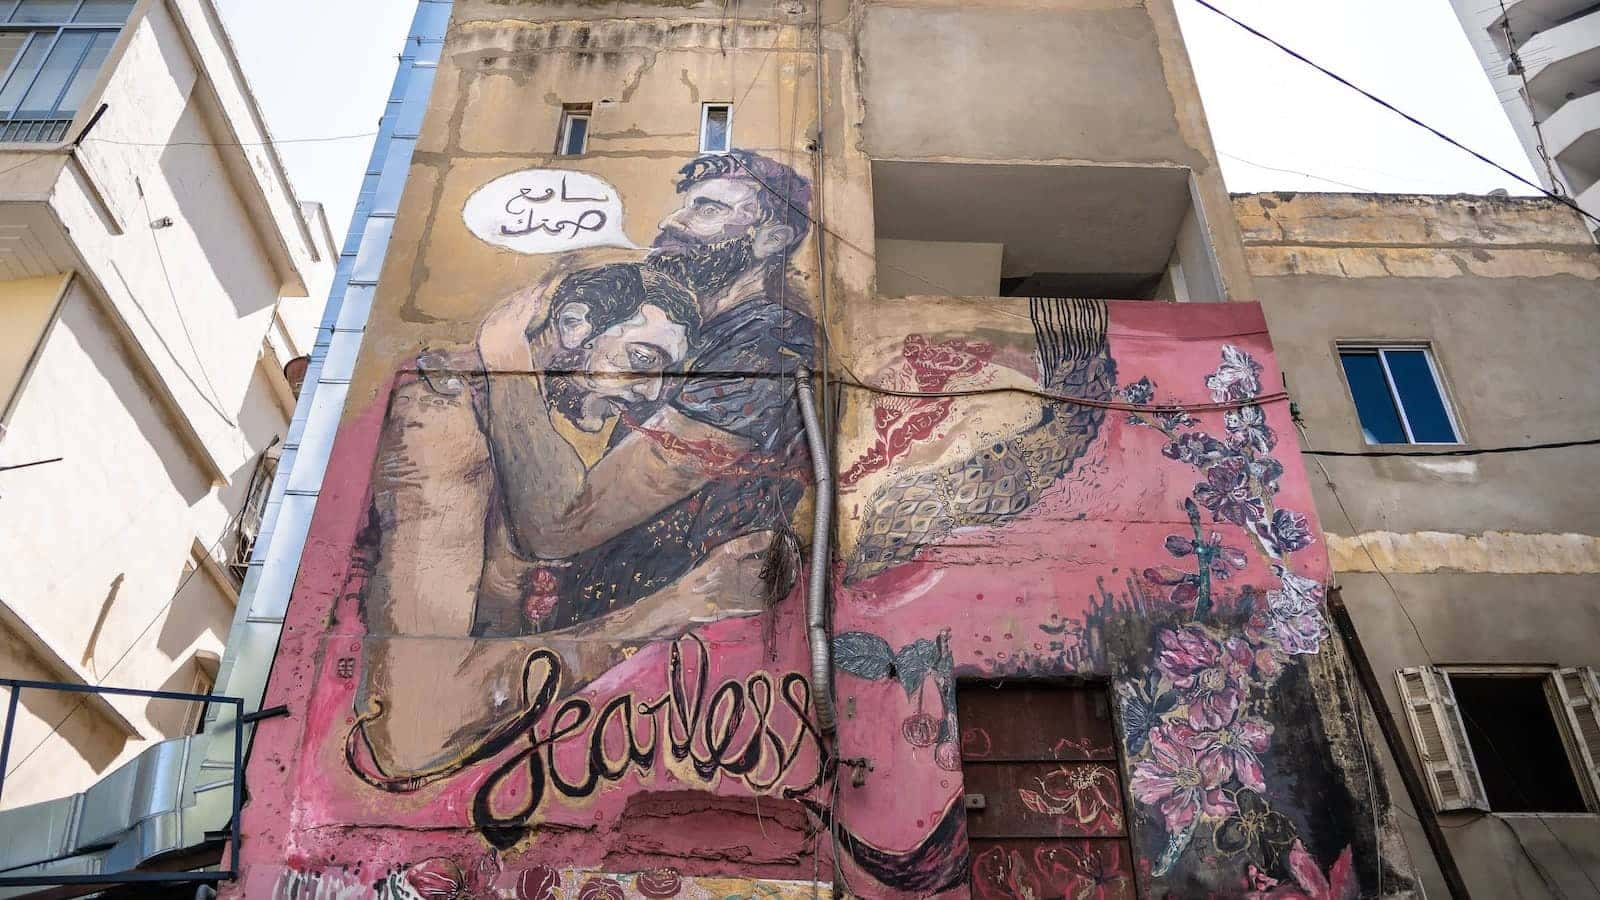 Gay street art mural in Beirut